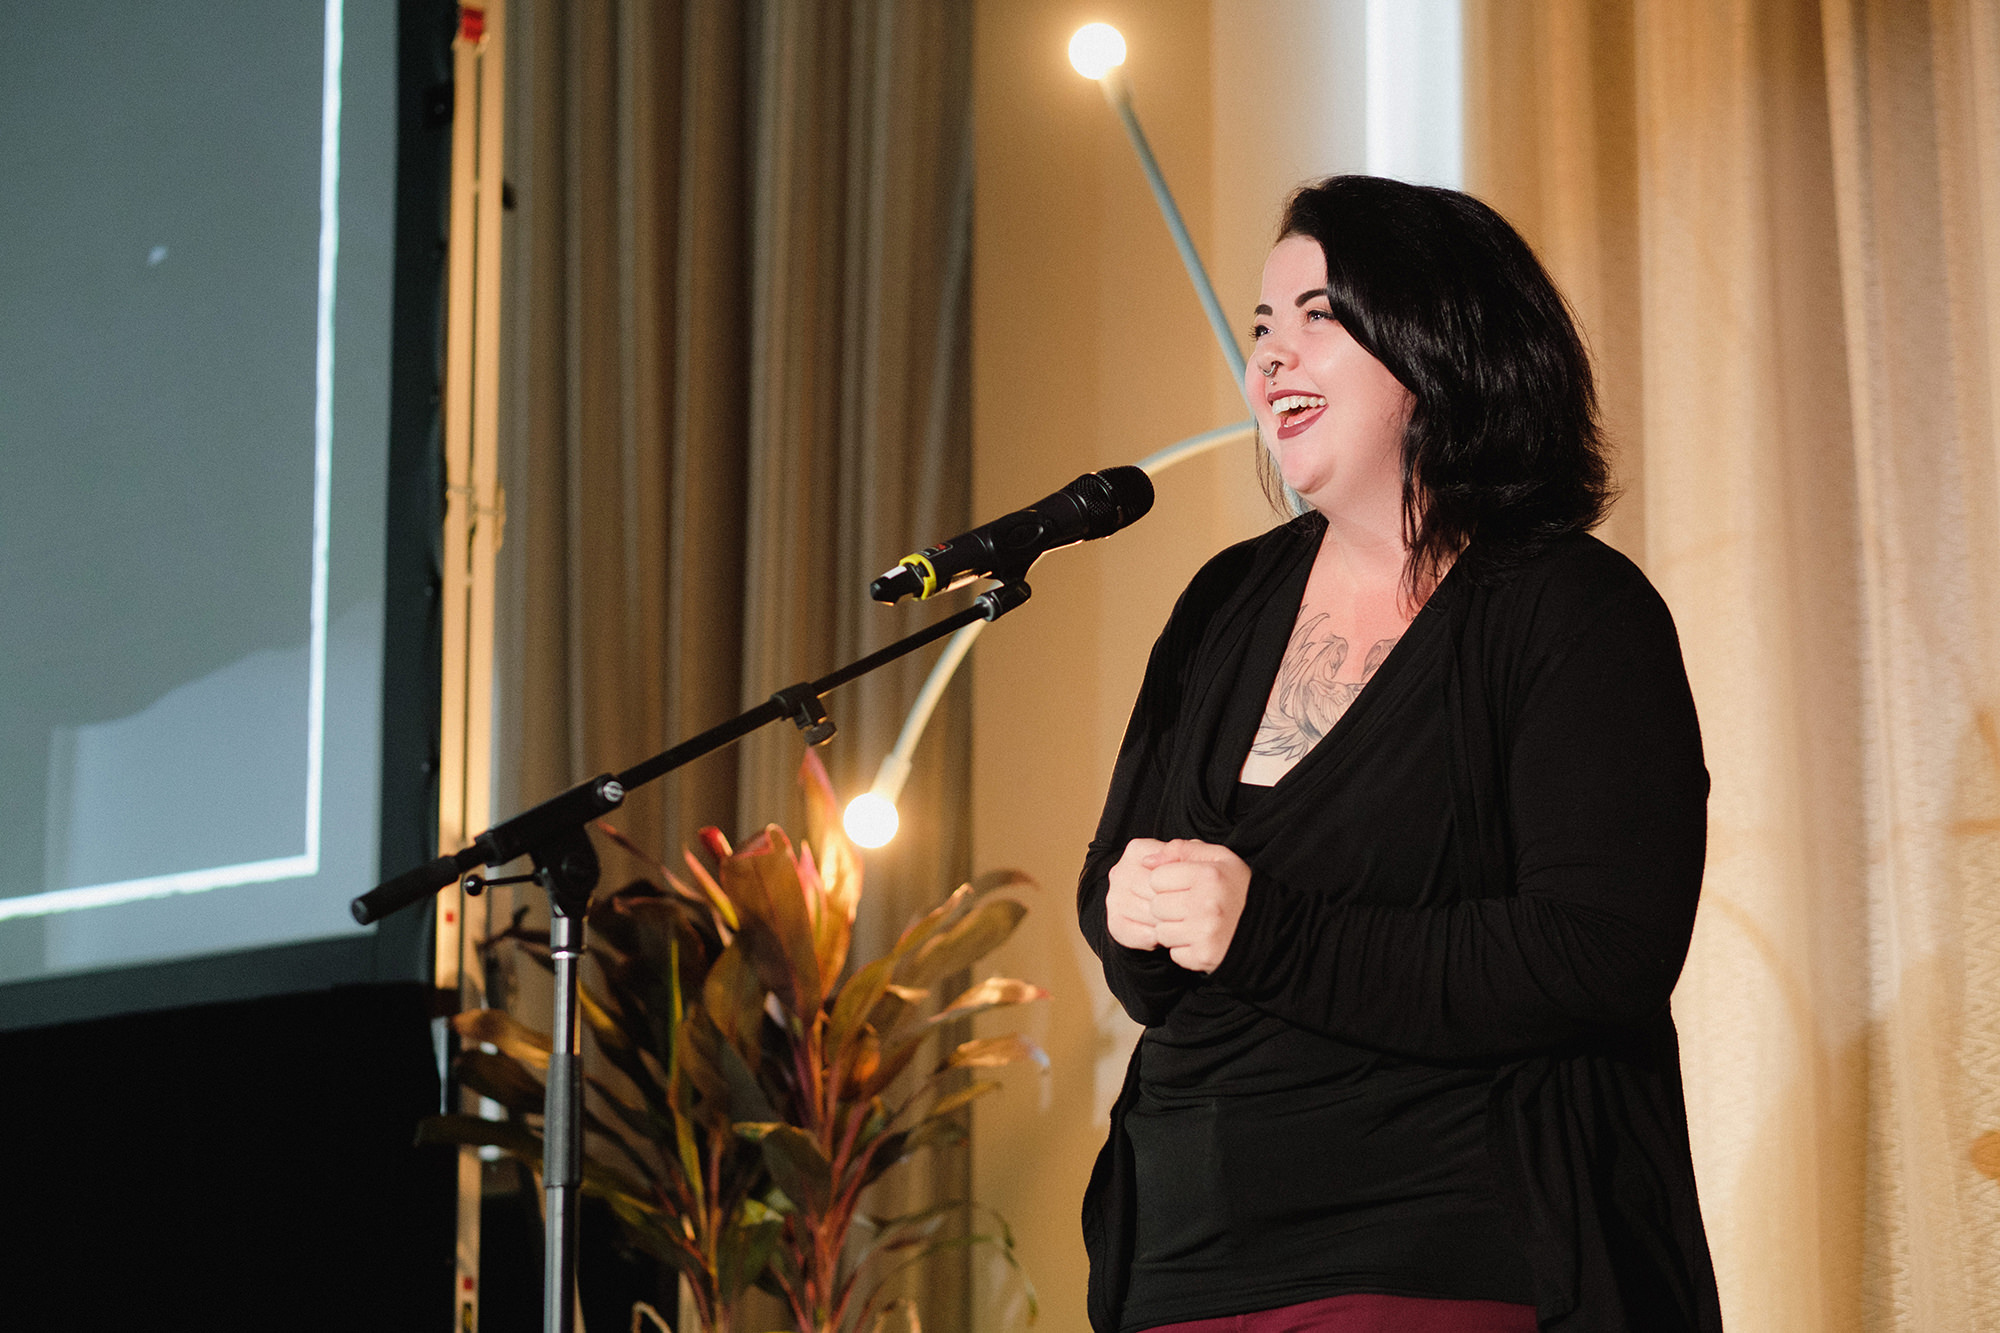 a woman wearing a black shirt and red pants standing on a stage and speaking into a microphone